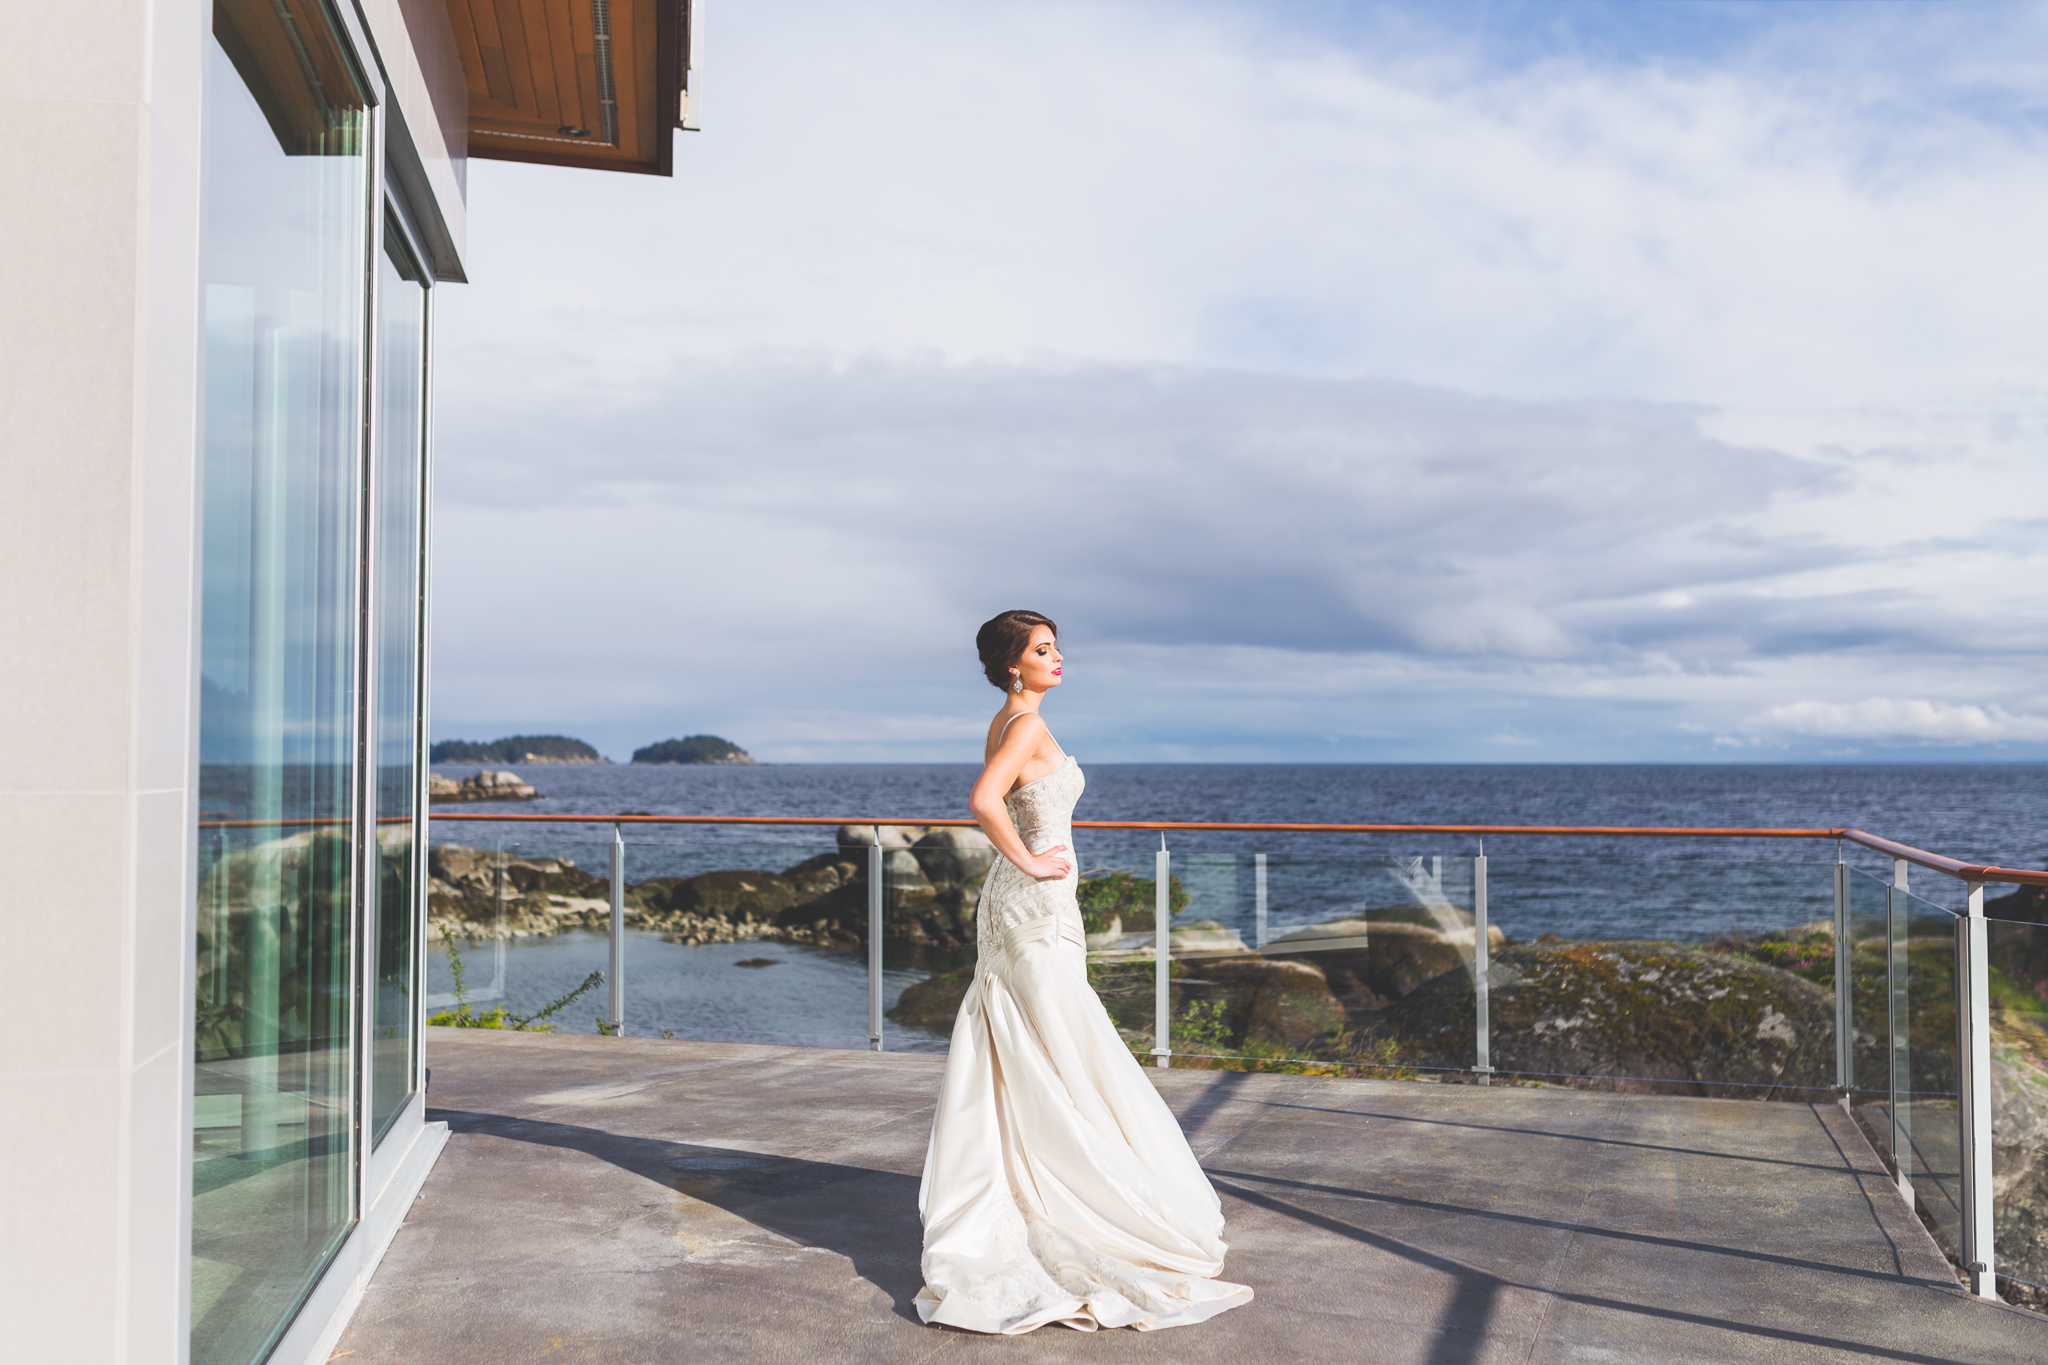 bridal editorial, pointhouse at sargeant bay, vancouver wedding photographer, jennifer picard photography